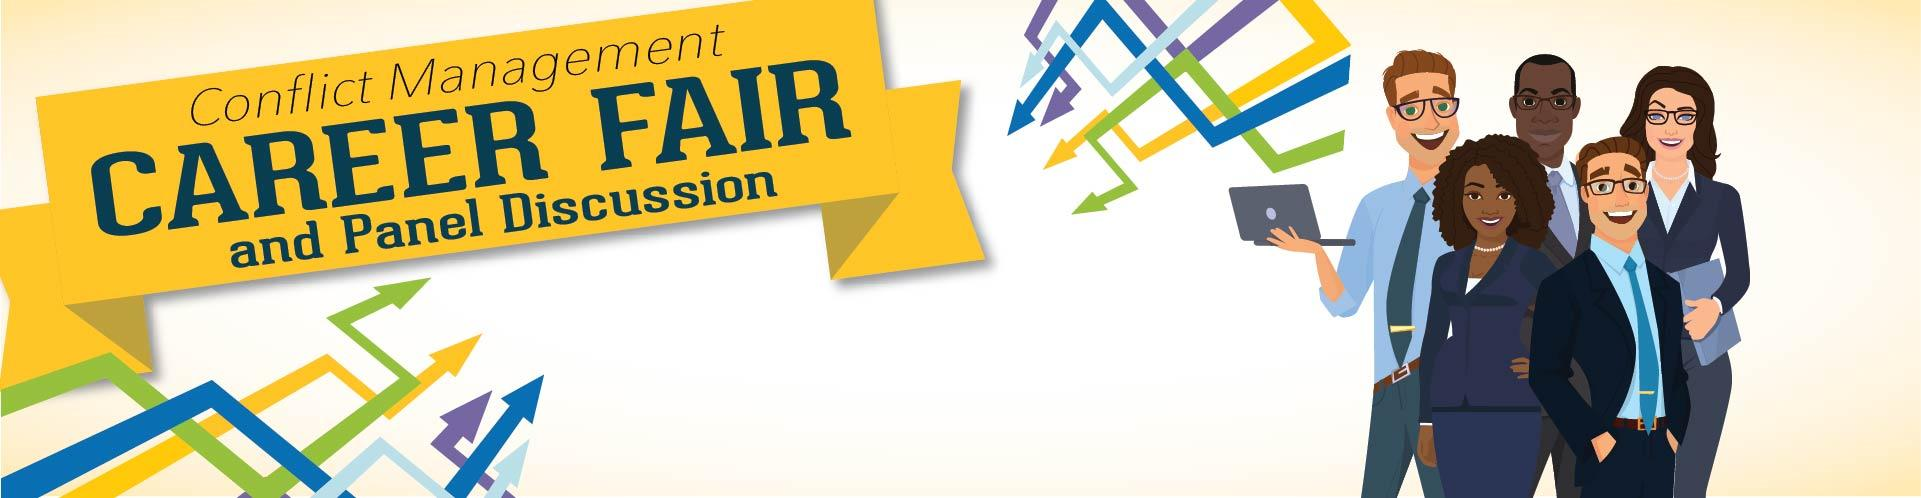 Join Us! Career Fair and Panel Discussion on Conflict Management